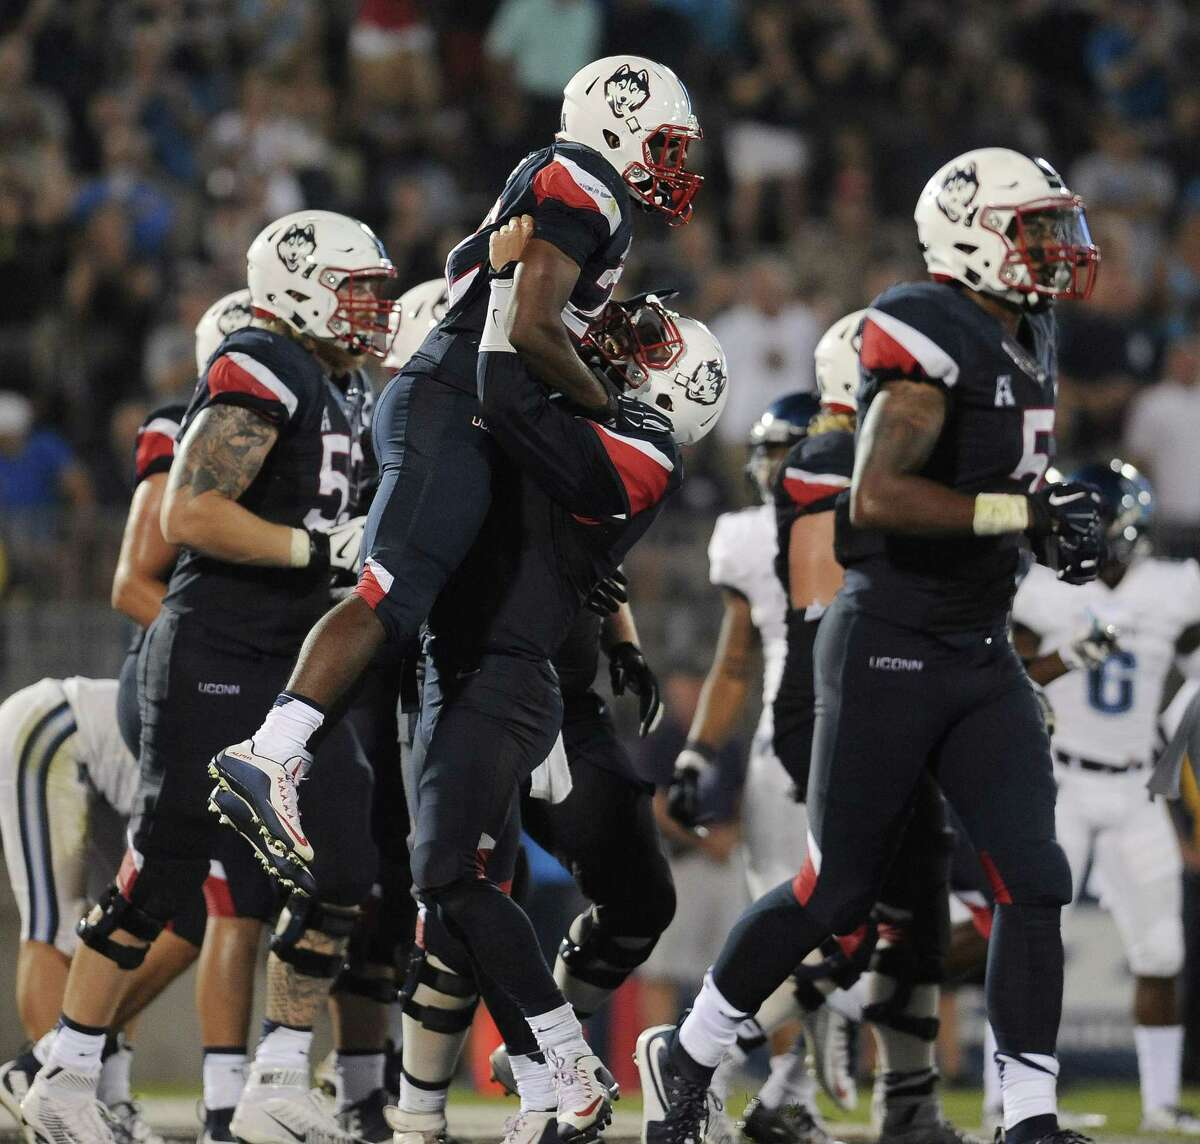 Connecticut running back Arkeel Newsome is lifted into the air by Connecticut quarterback Bryant Shirreffs after Newsome scored a touchdown during the second half of an NCAA college football game at Rentschler Field, Thursday, Sept. 3, 2015, in East Hartford, Conn. UConn won 20-15. (AP Photo/Jessica Hill)